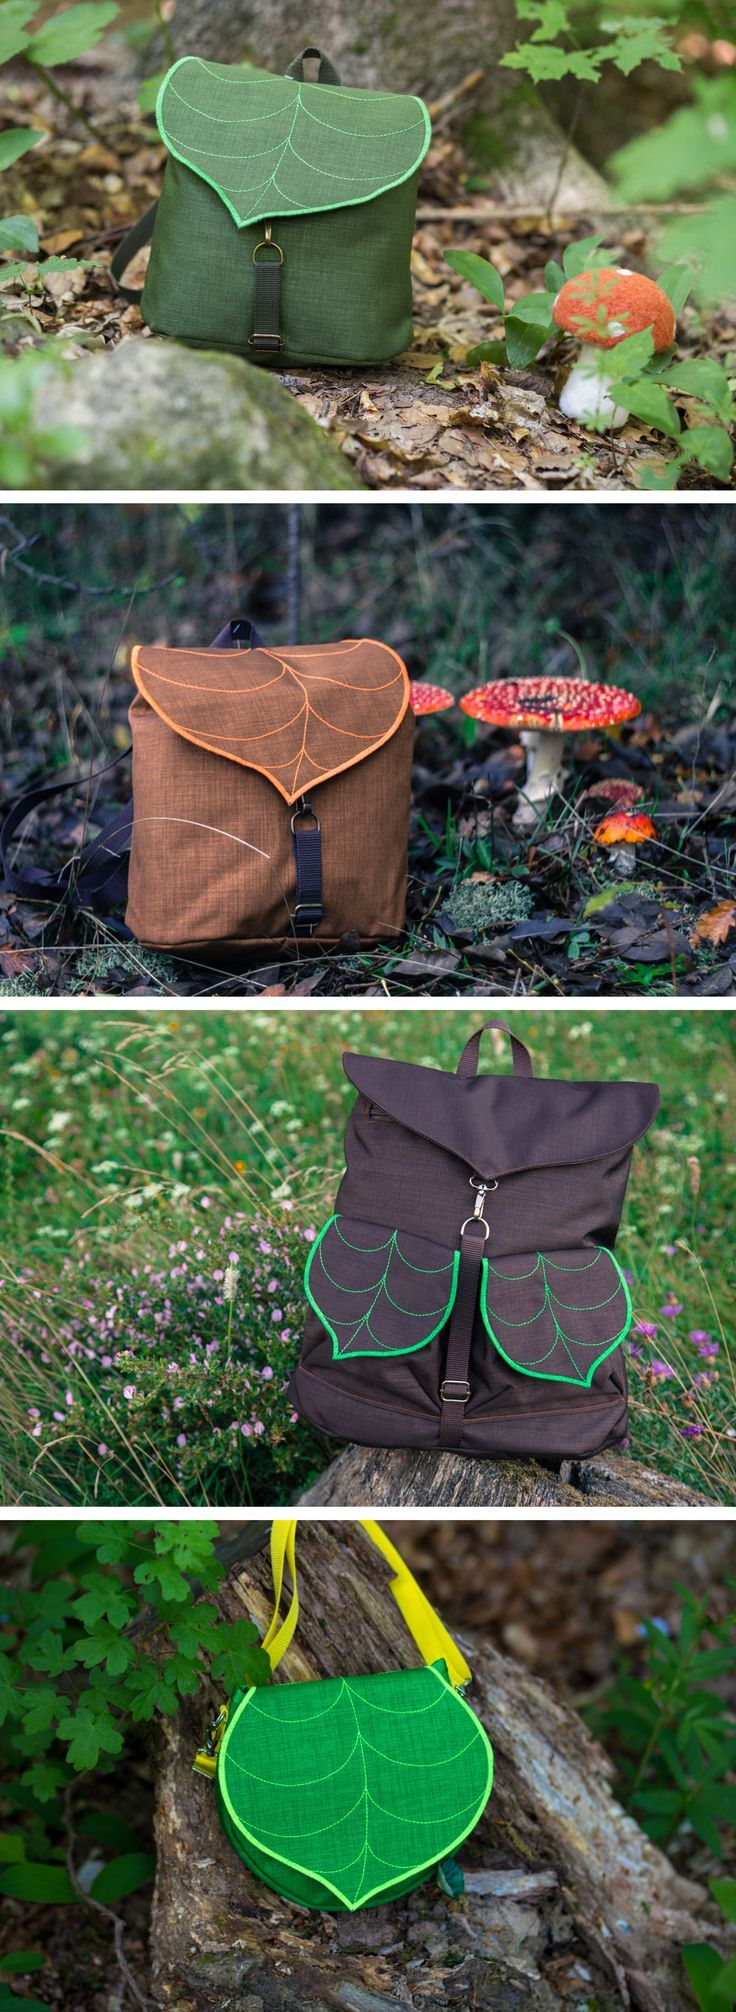 LeaflingBags Handmade Waterproof Leaf Bags, Backpacks - online ladies handbags, gold handbags, shop handbags online *sponsored https://www.pinterest.com/purses_handbags/ https://www.pinterest.com/explore/purses/ https://www.pinterest.com/purses_handbags/designer-handbags/ http://www.zappos.com/bags